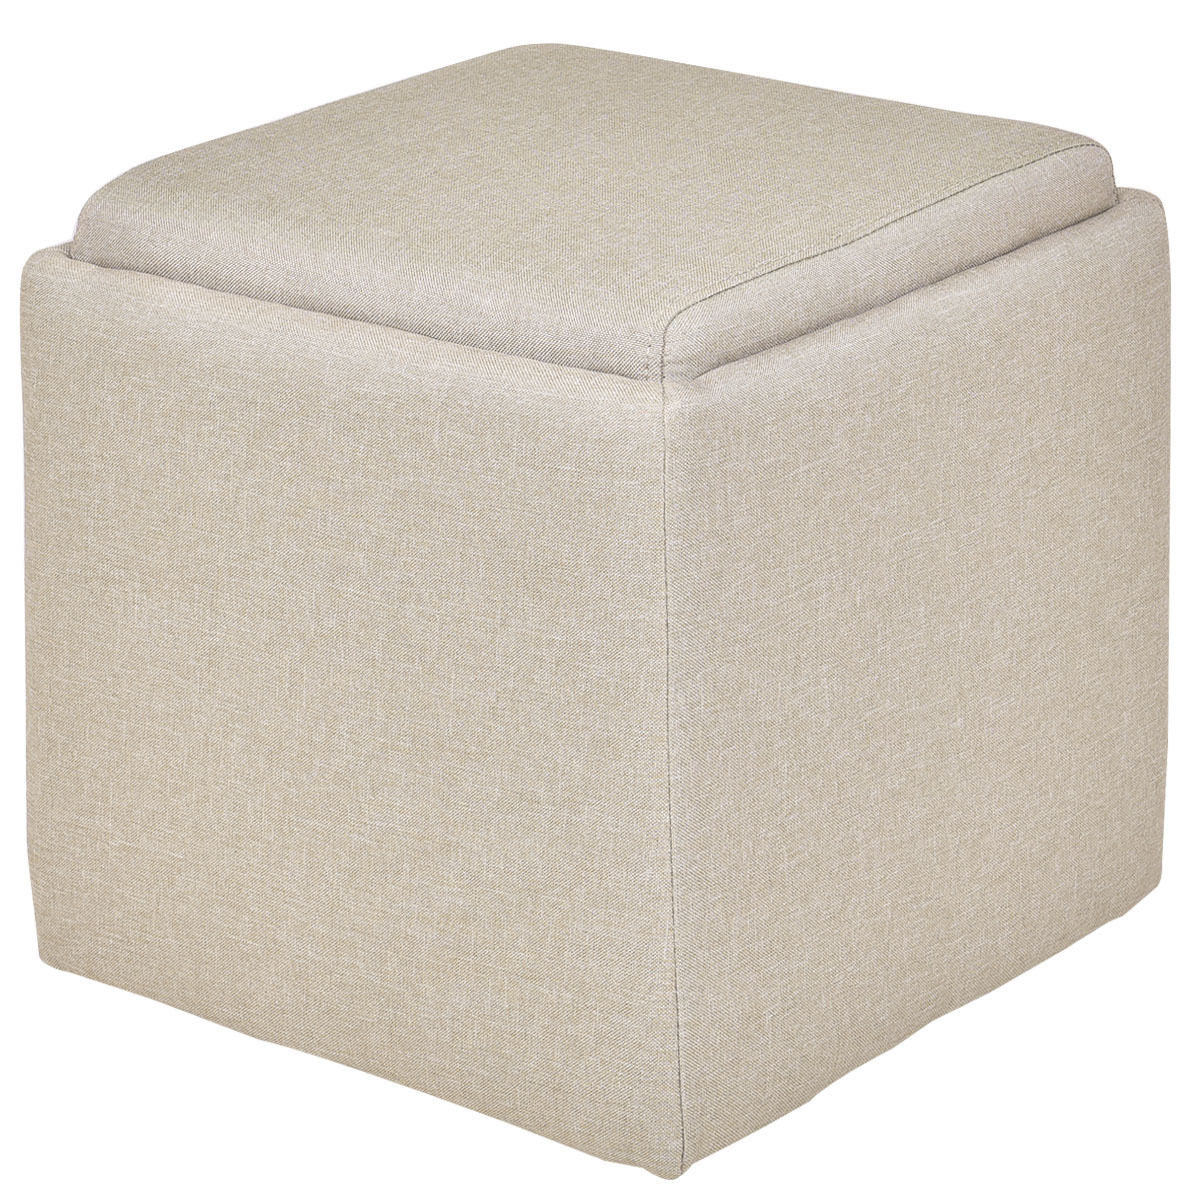 Gymax Beige Linen Storage Box Ottoman Square Foot Stool Wood Frame